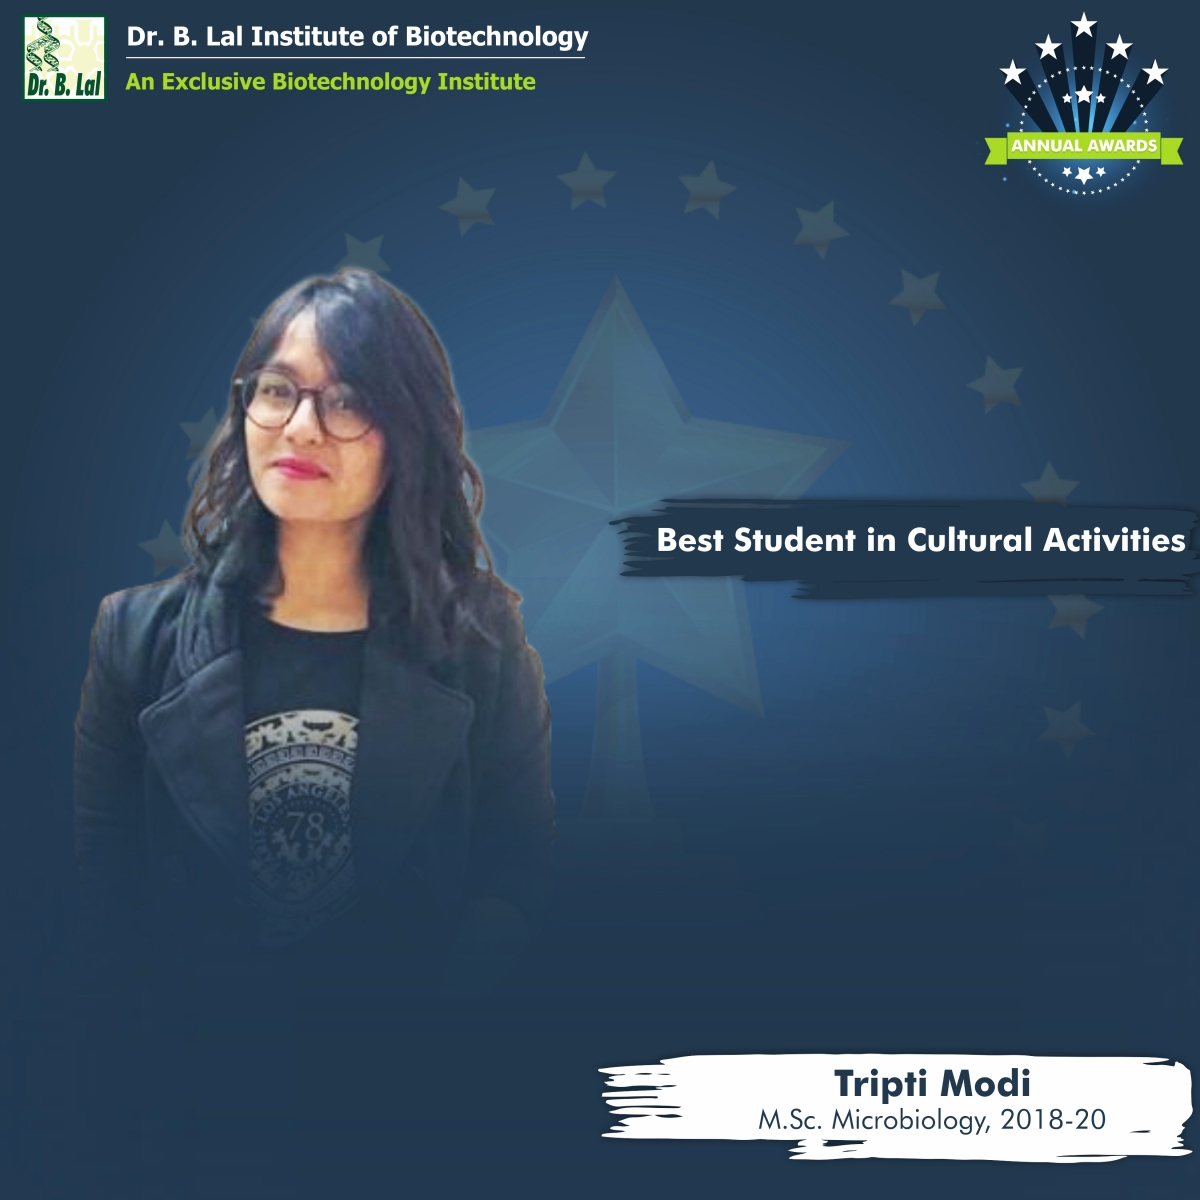 Best Student with Cultural Activities | Annual Awards